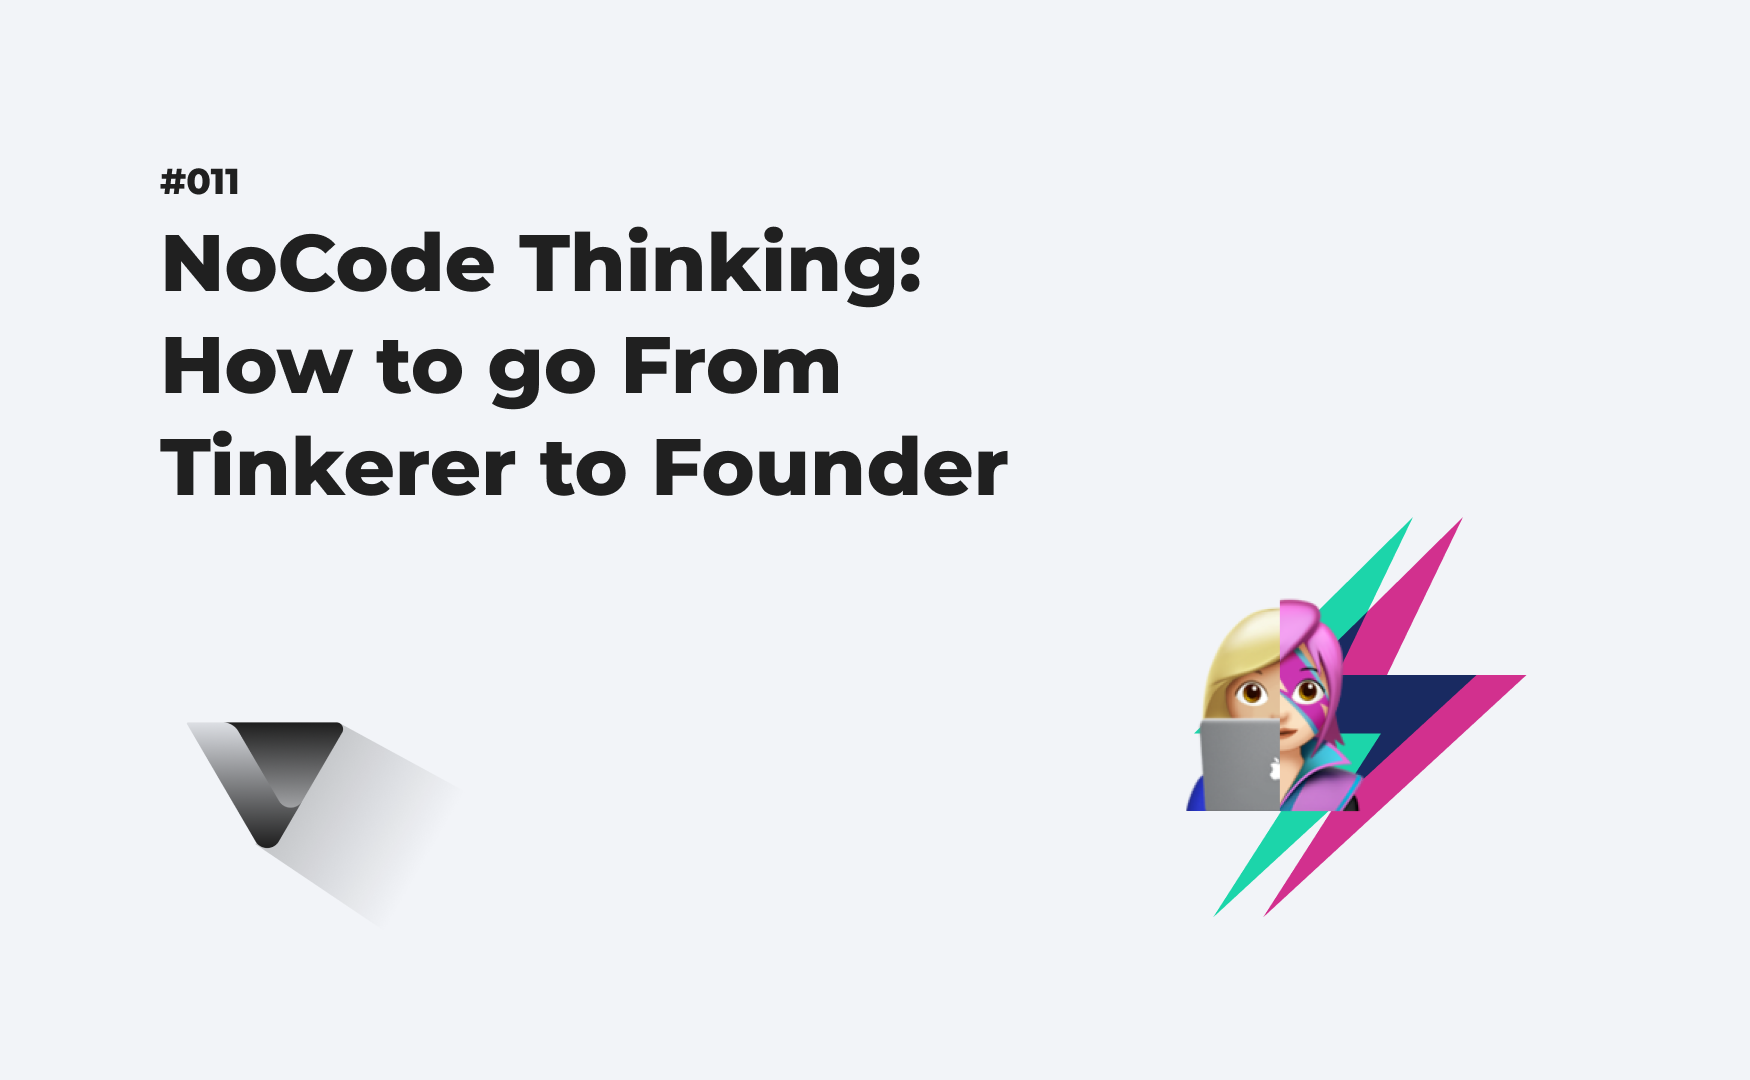 NoCode Thinking: How to go from Tinkerer to Founder